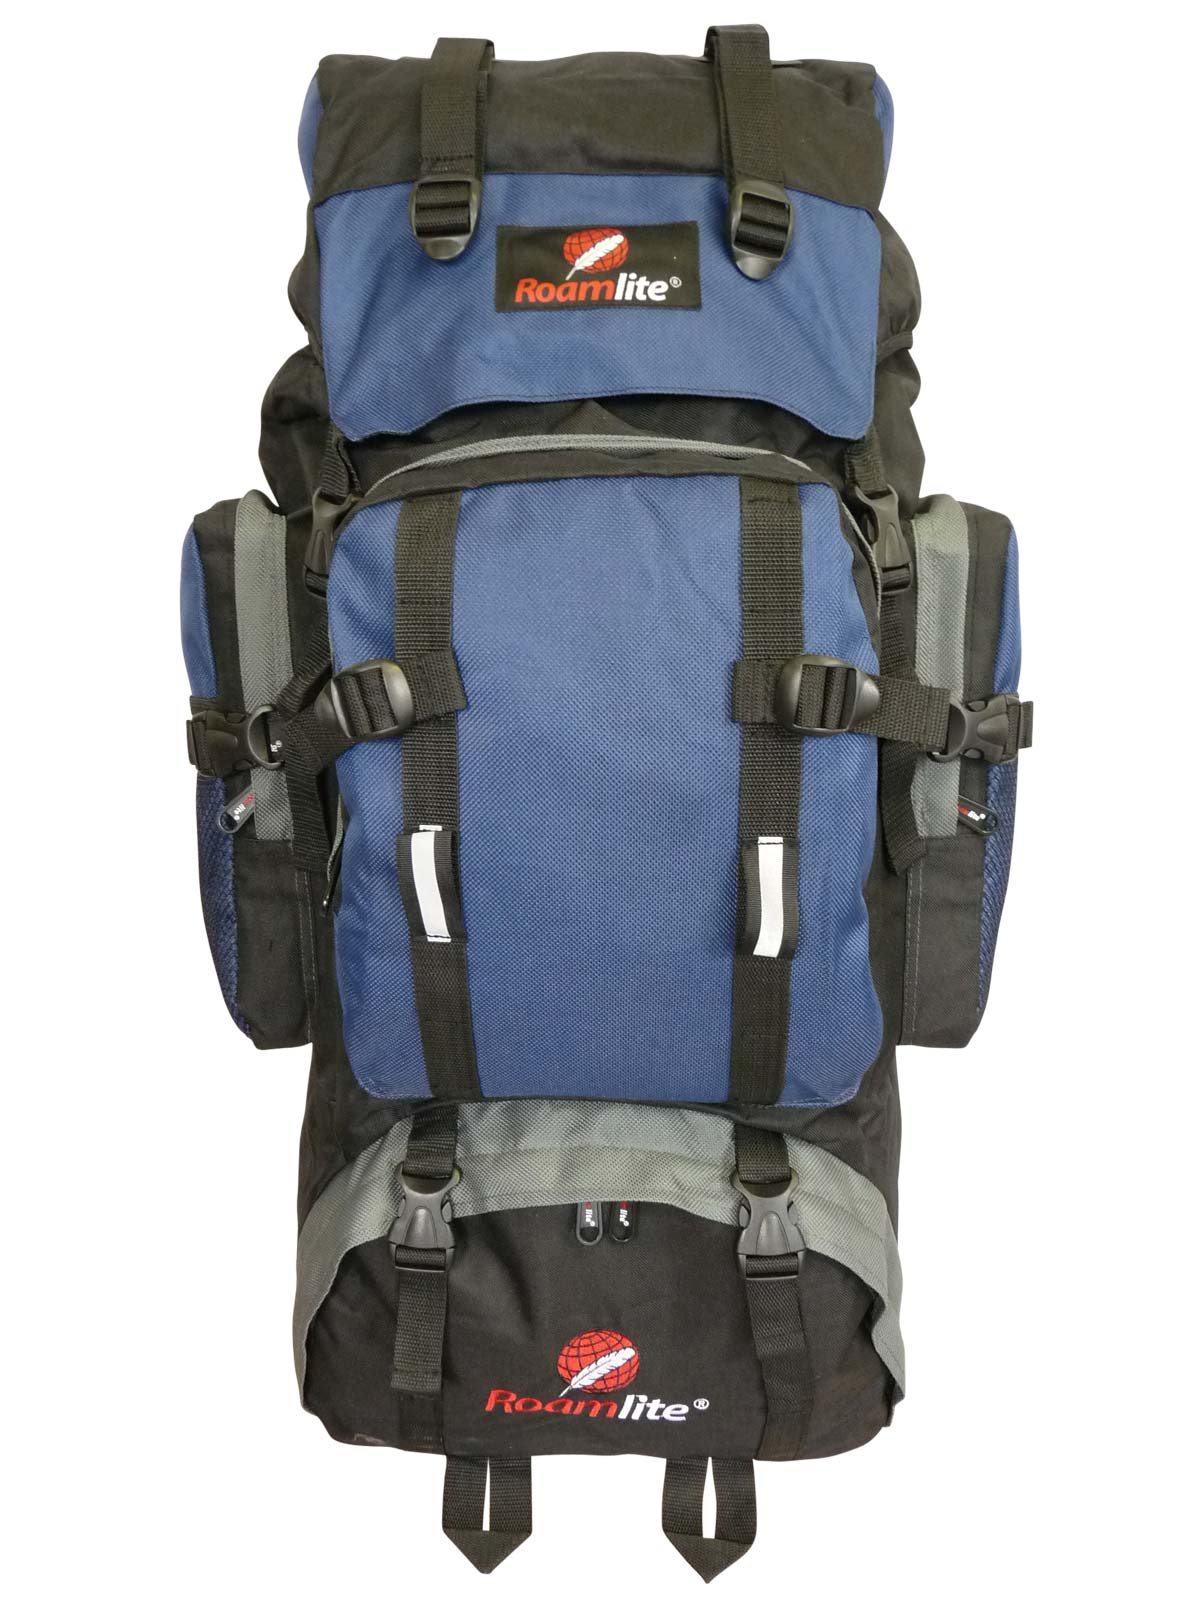 Large XL Camping Festival Backpack RL15KNf